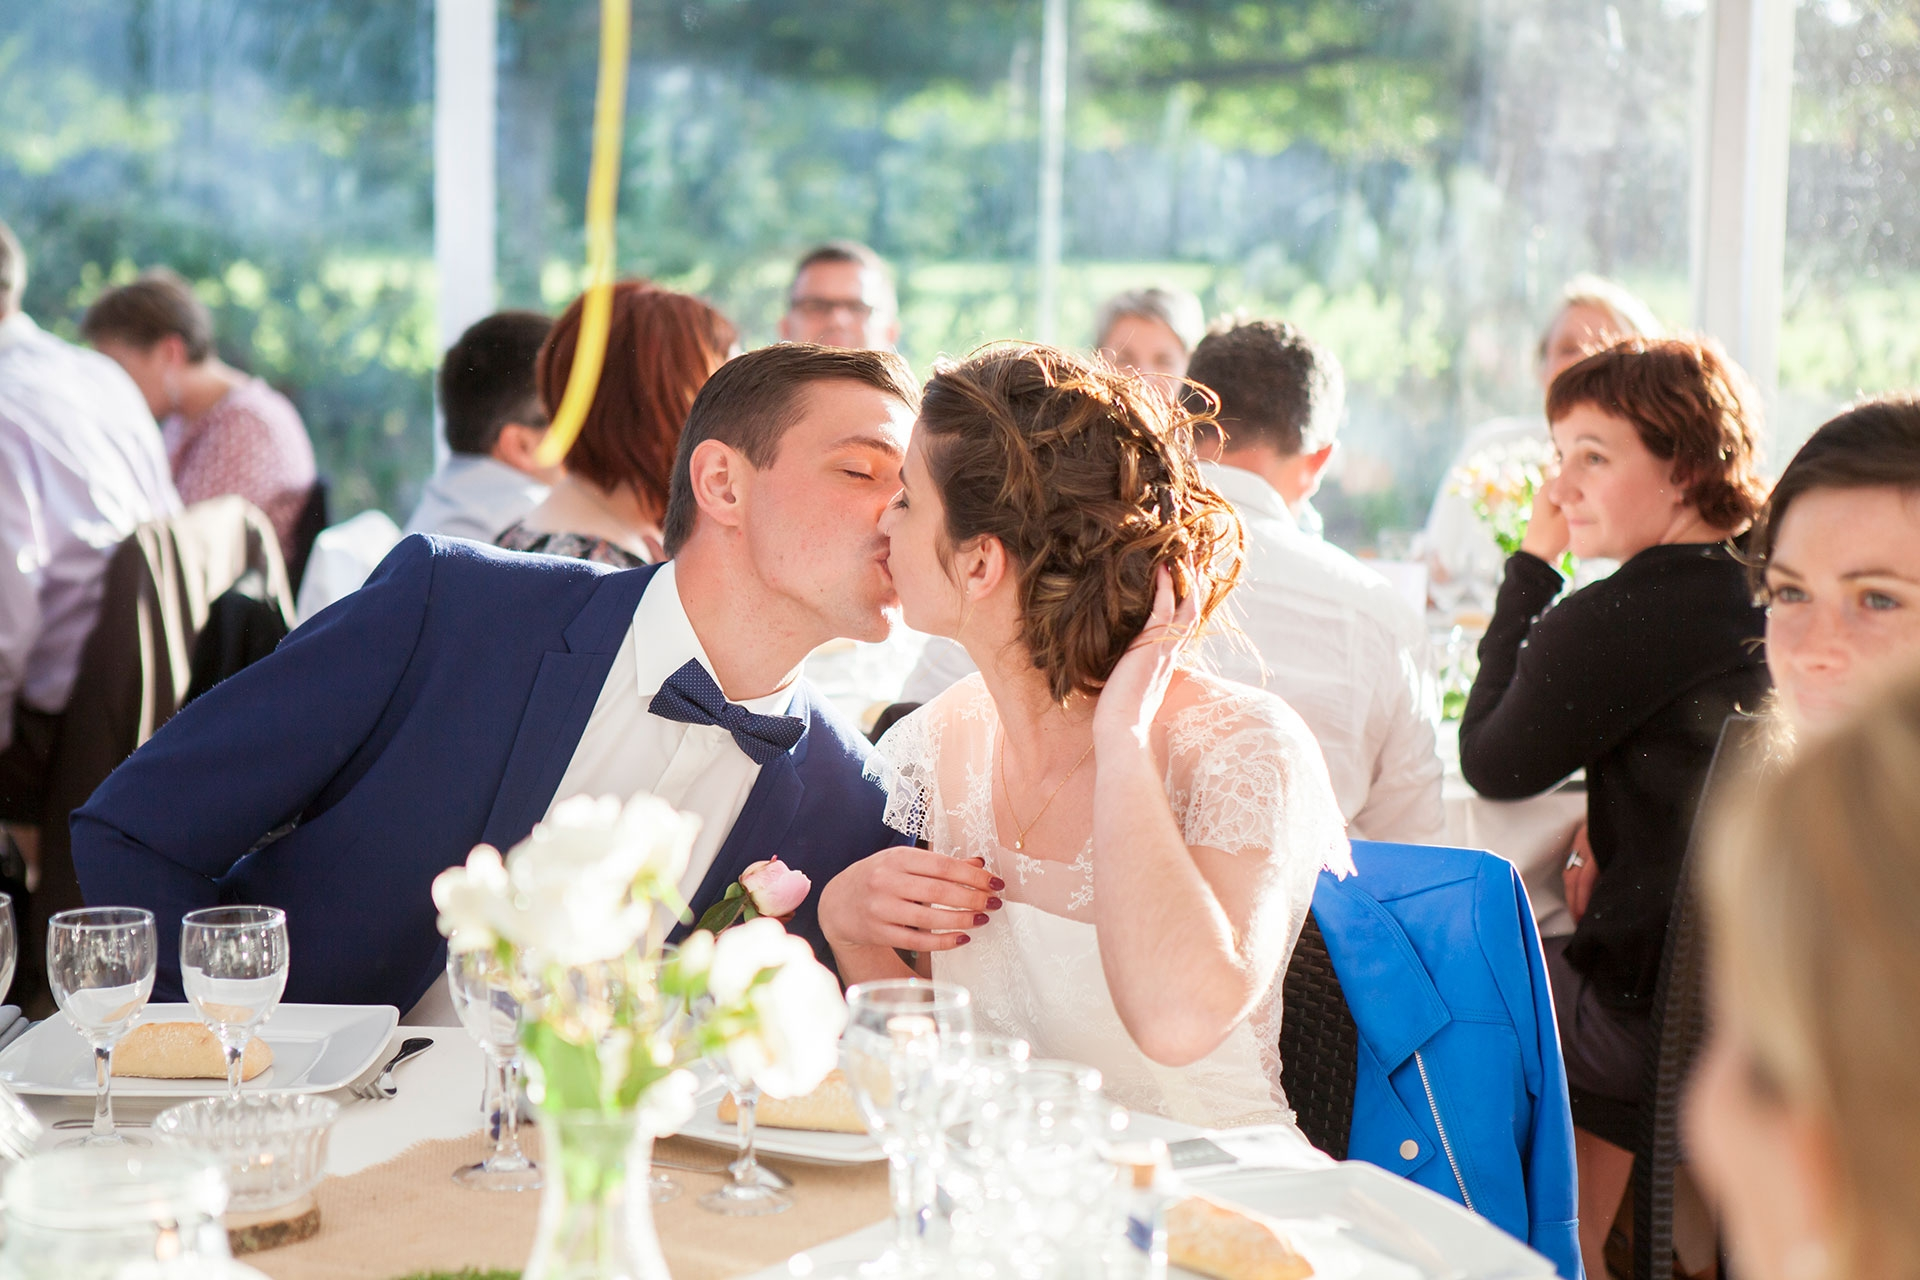 particuliers-evenements-mariages-oui-clementine&alexandre-66